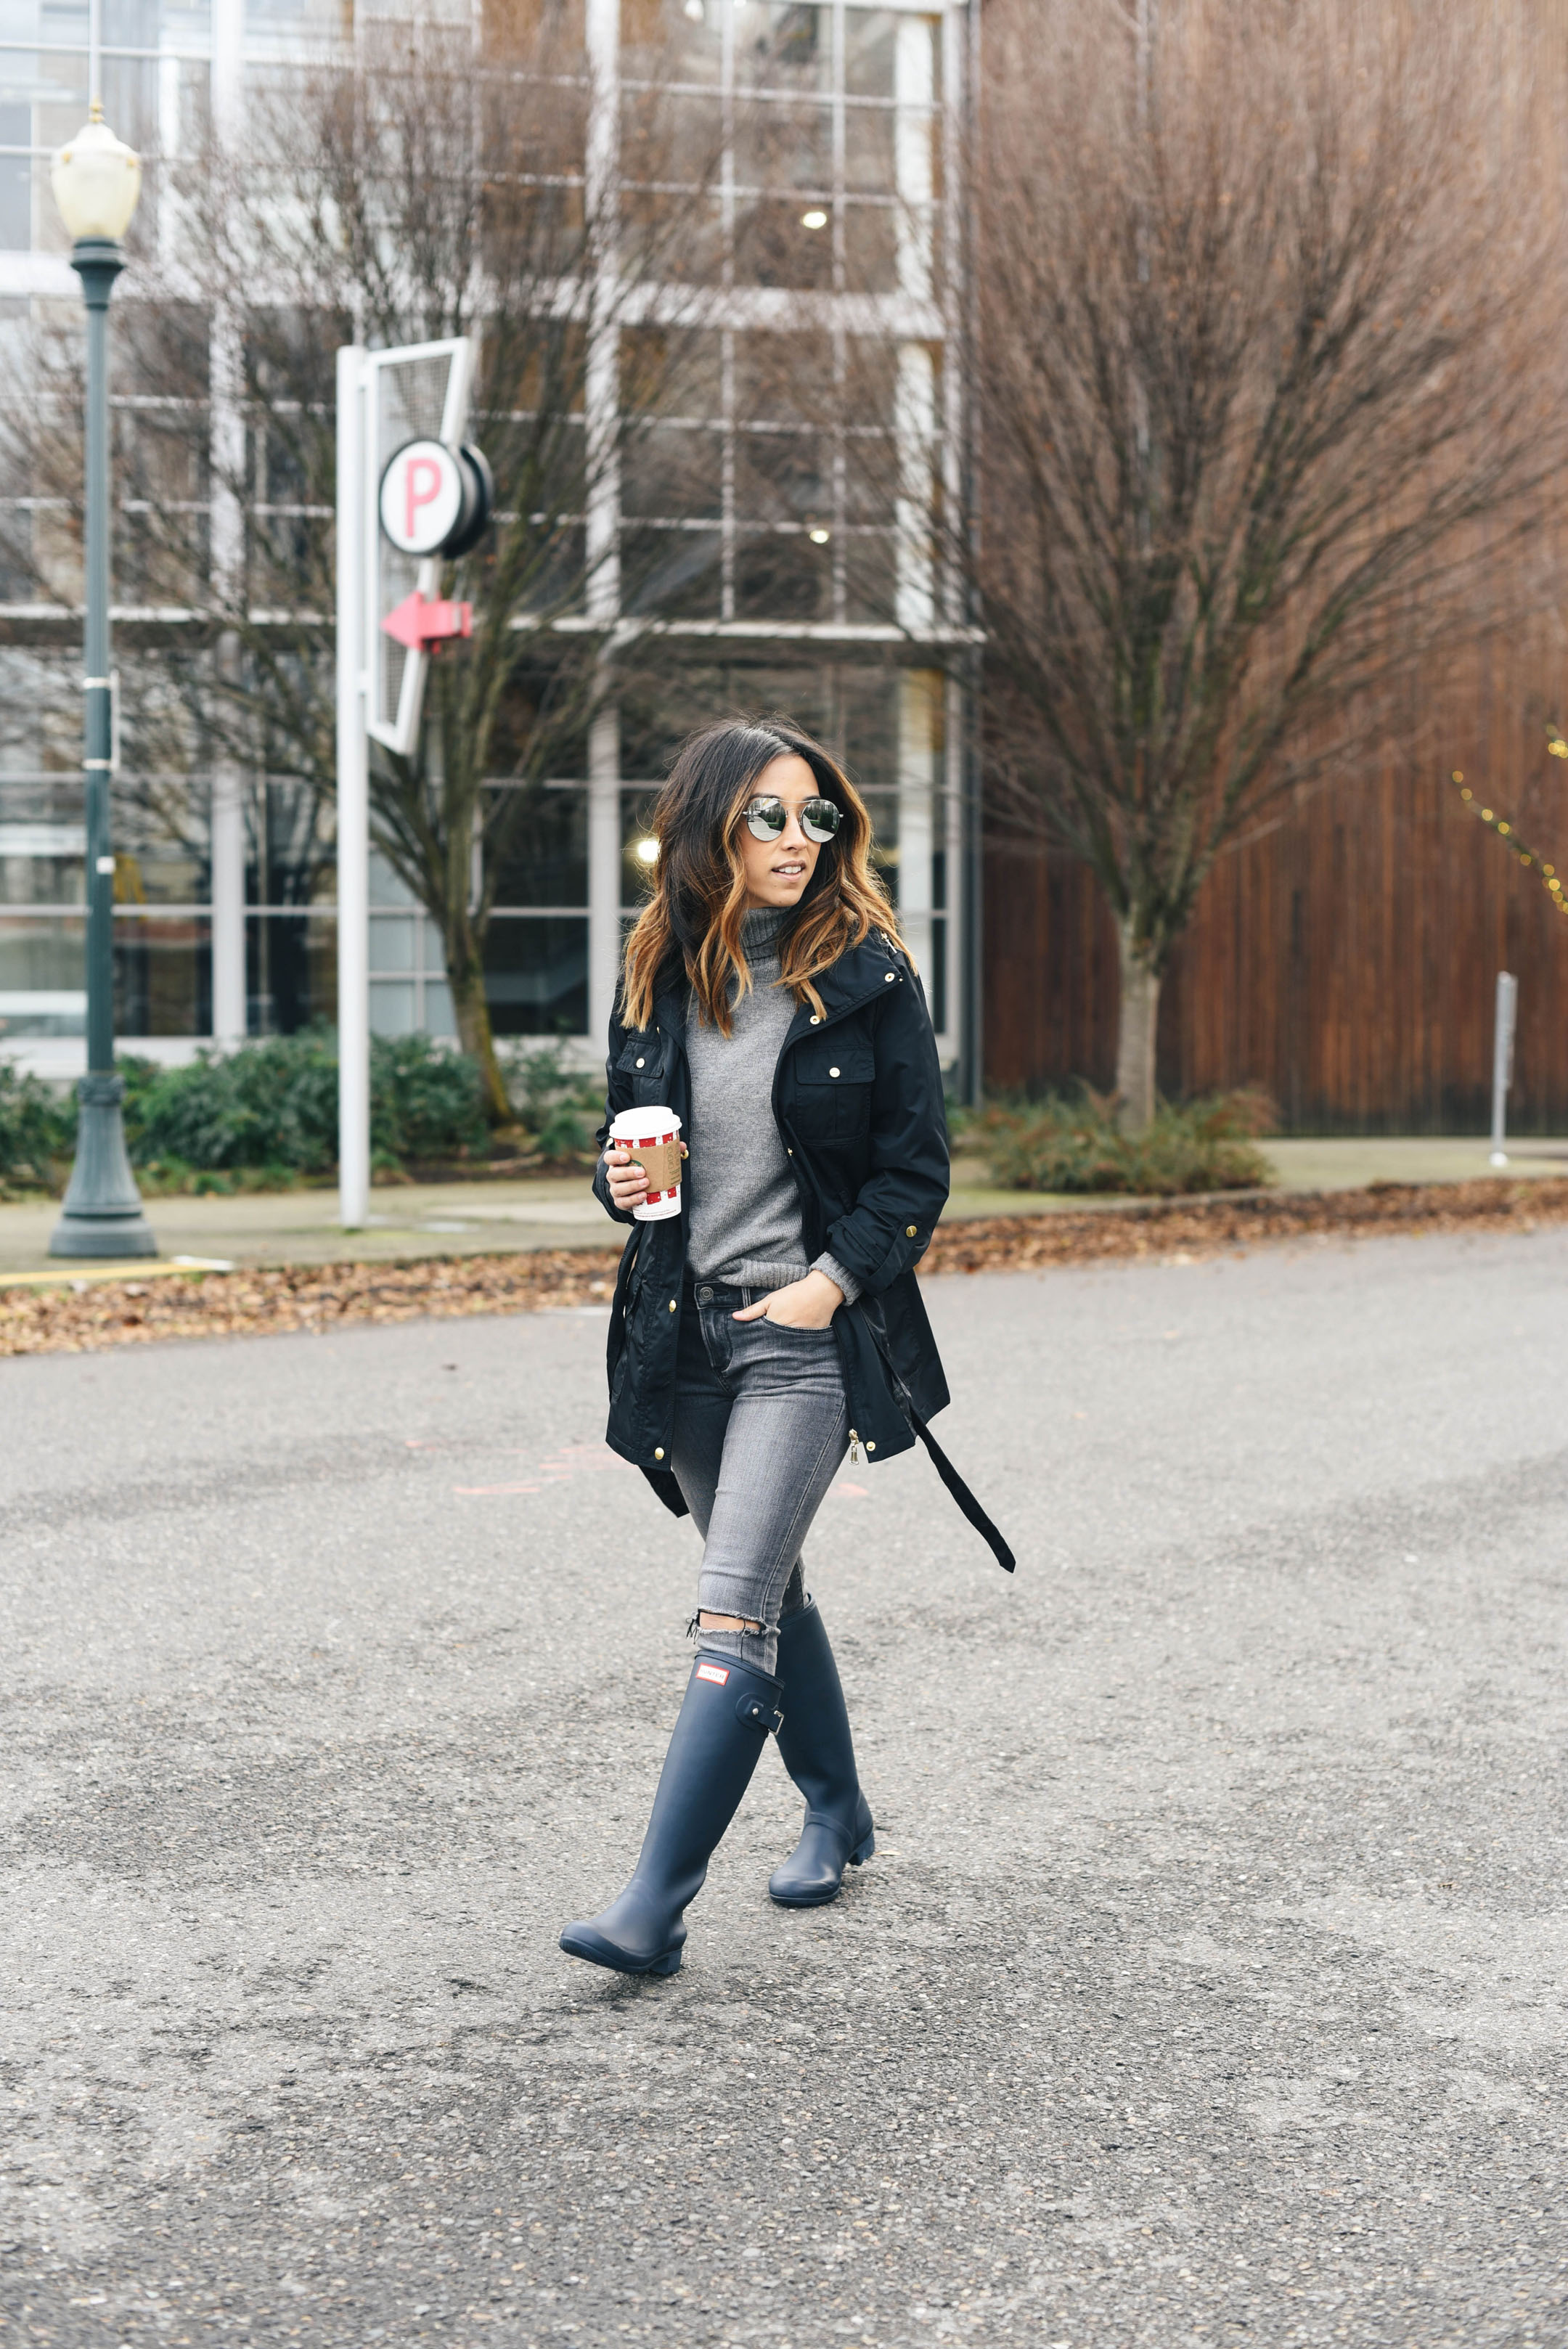 Winter Wear: My 3 Must-Have Winter Layers - Crystalin Marie